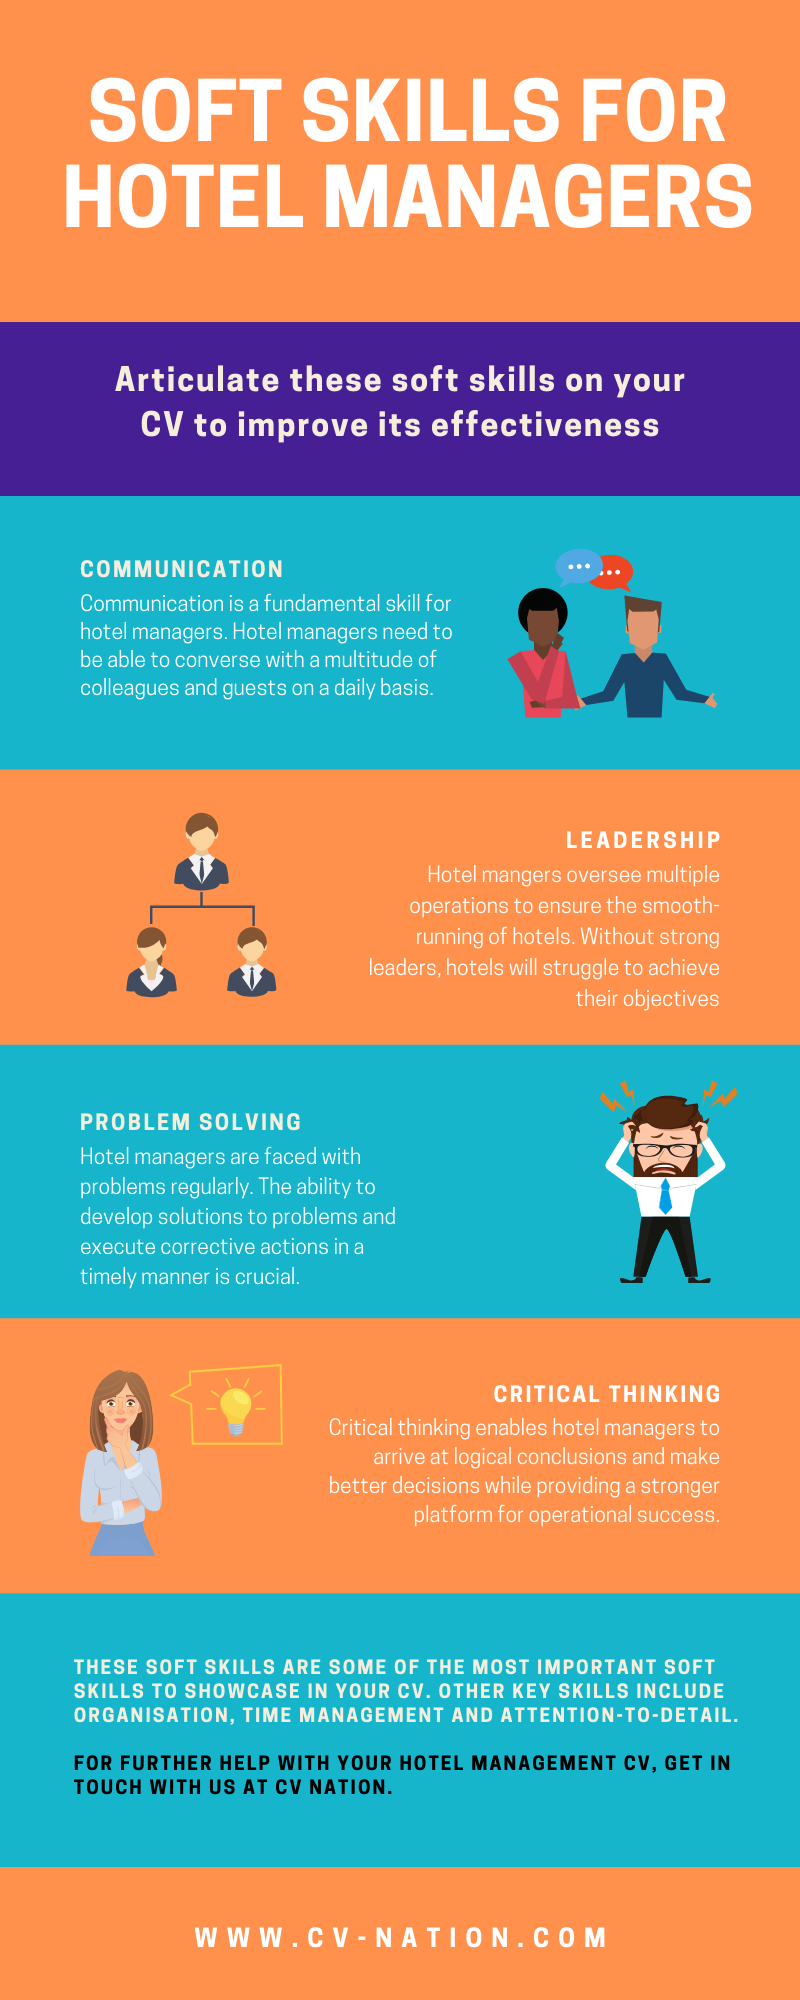 This infographic highlights the key skills that are